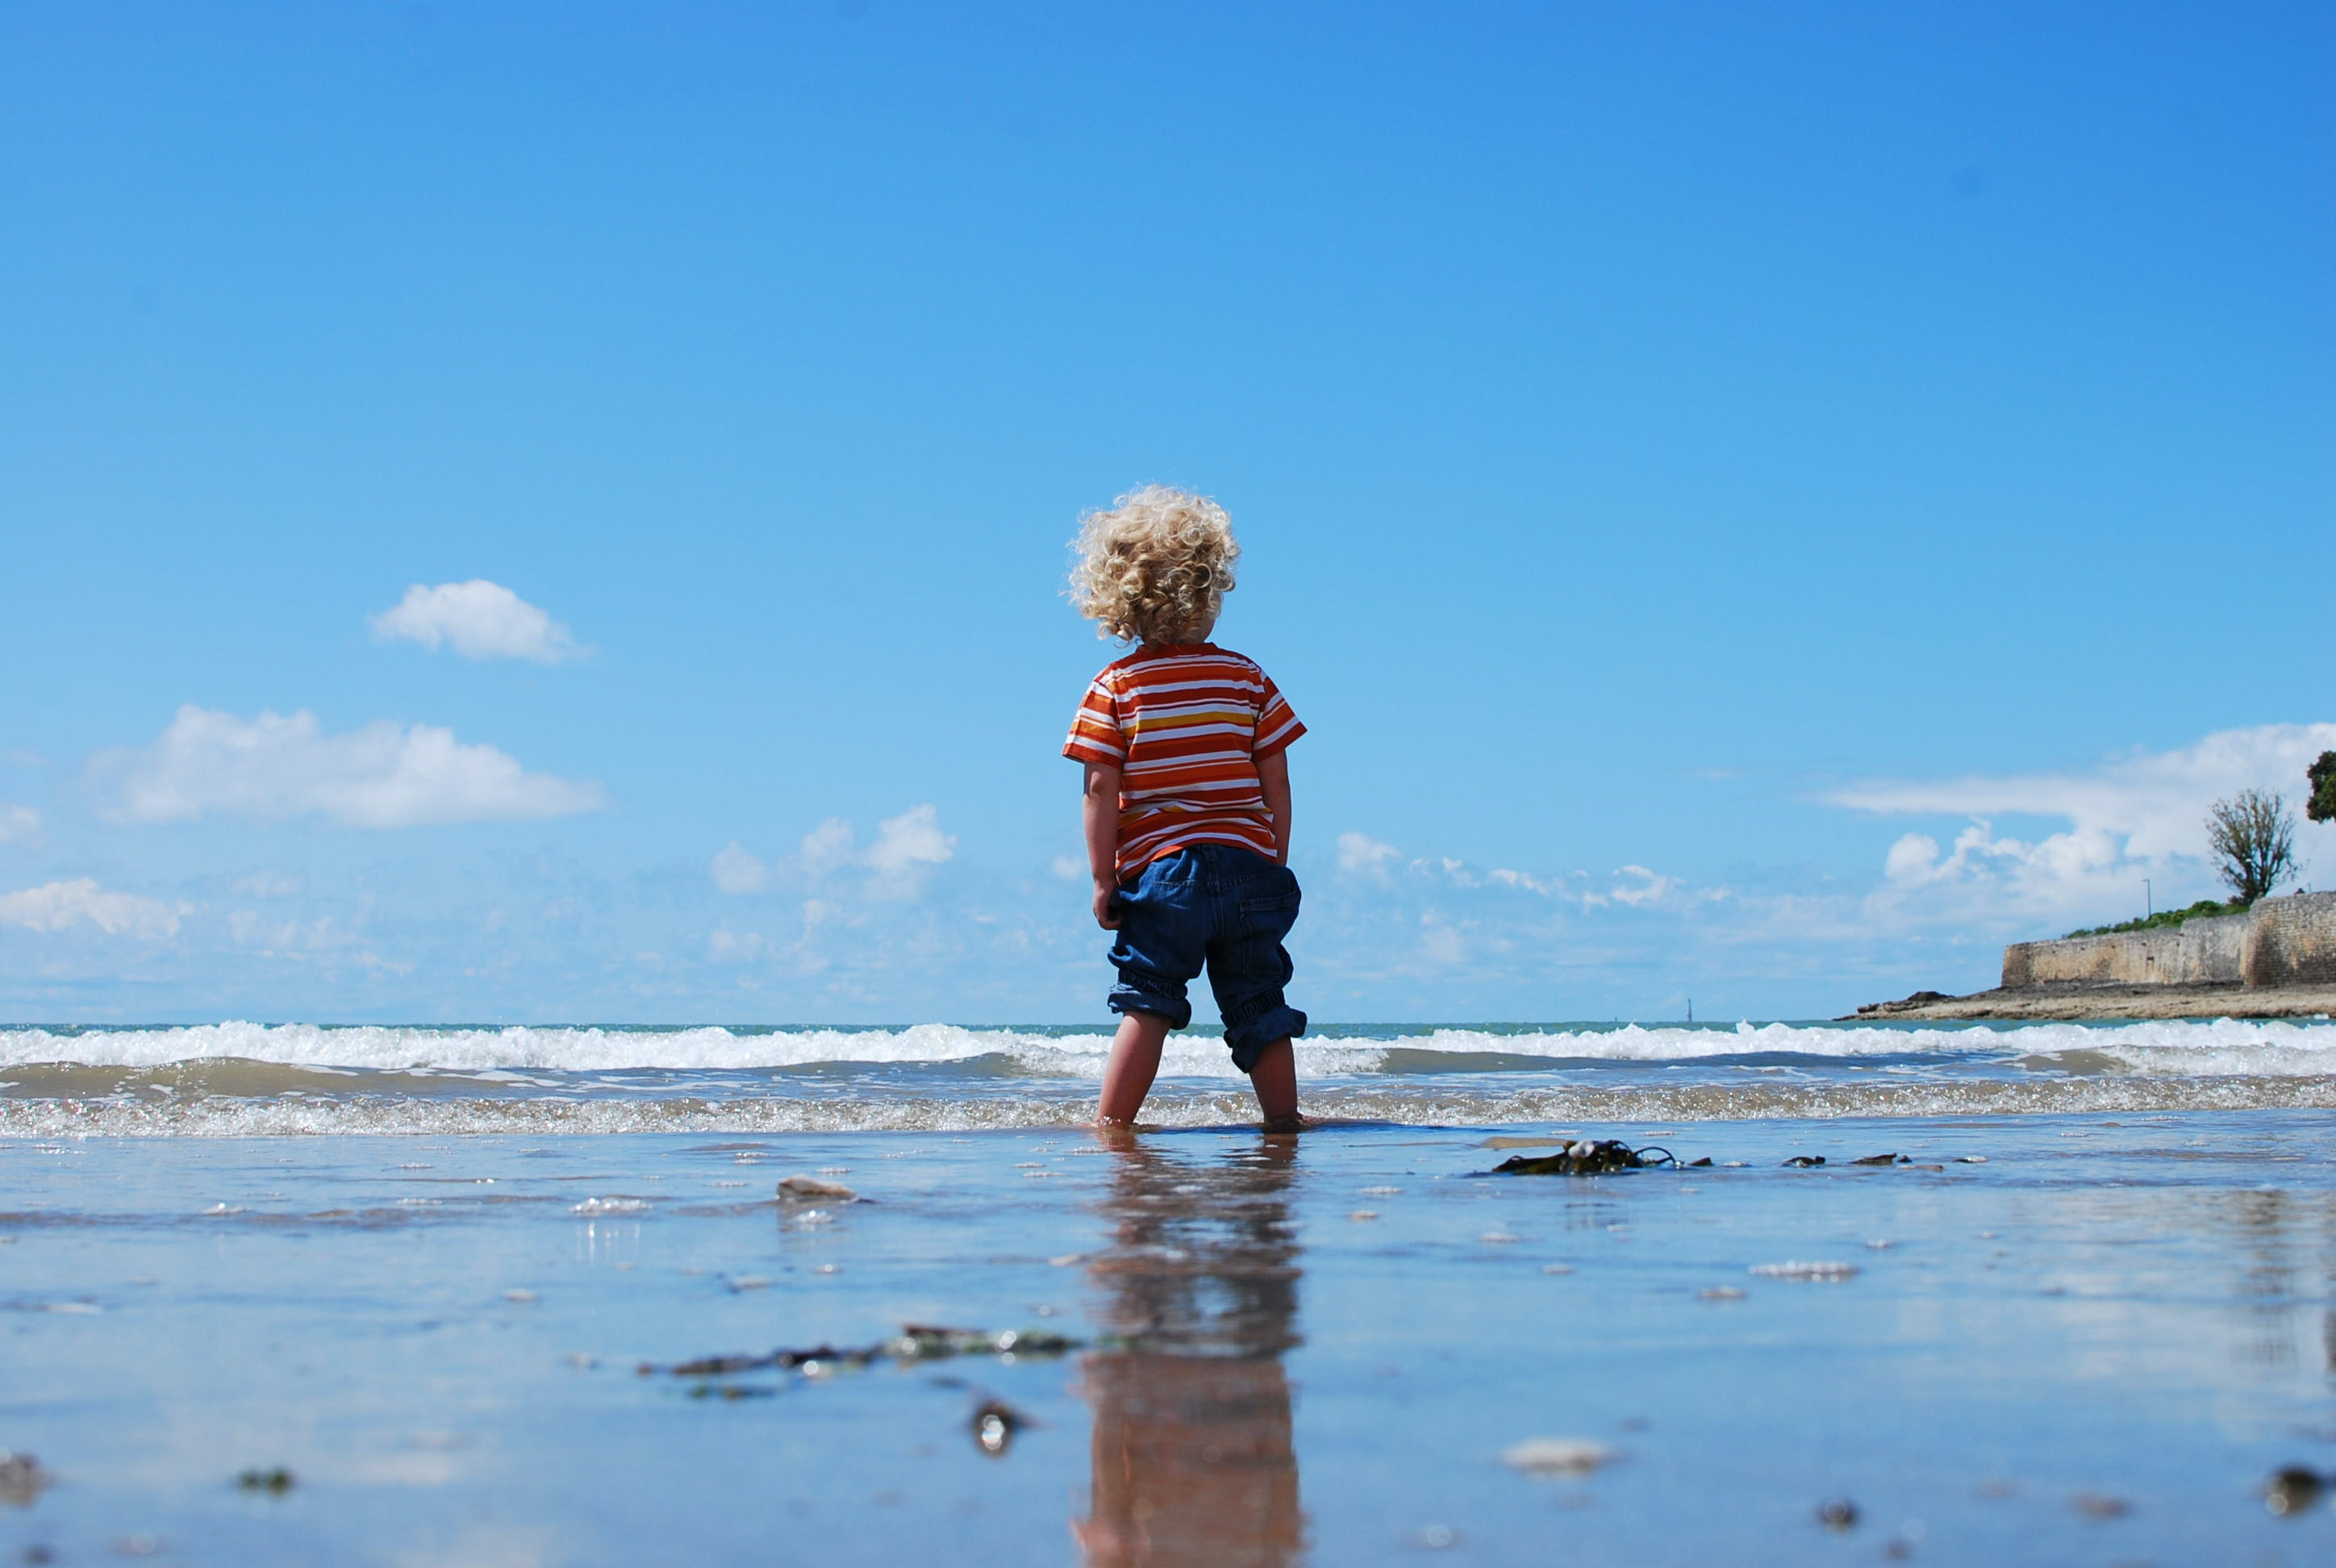 A little boy with curly blonde hair, wearing a striped red shirt, standing in the water